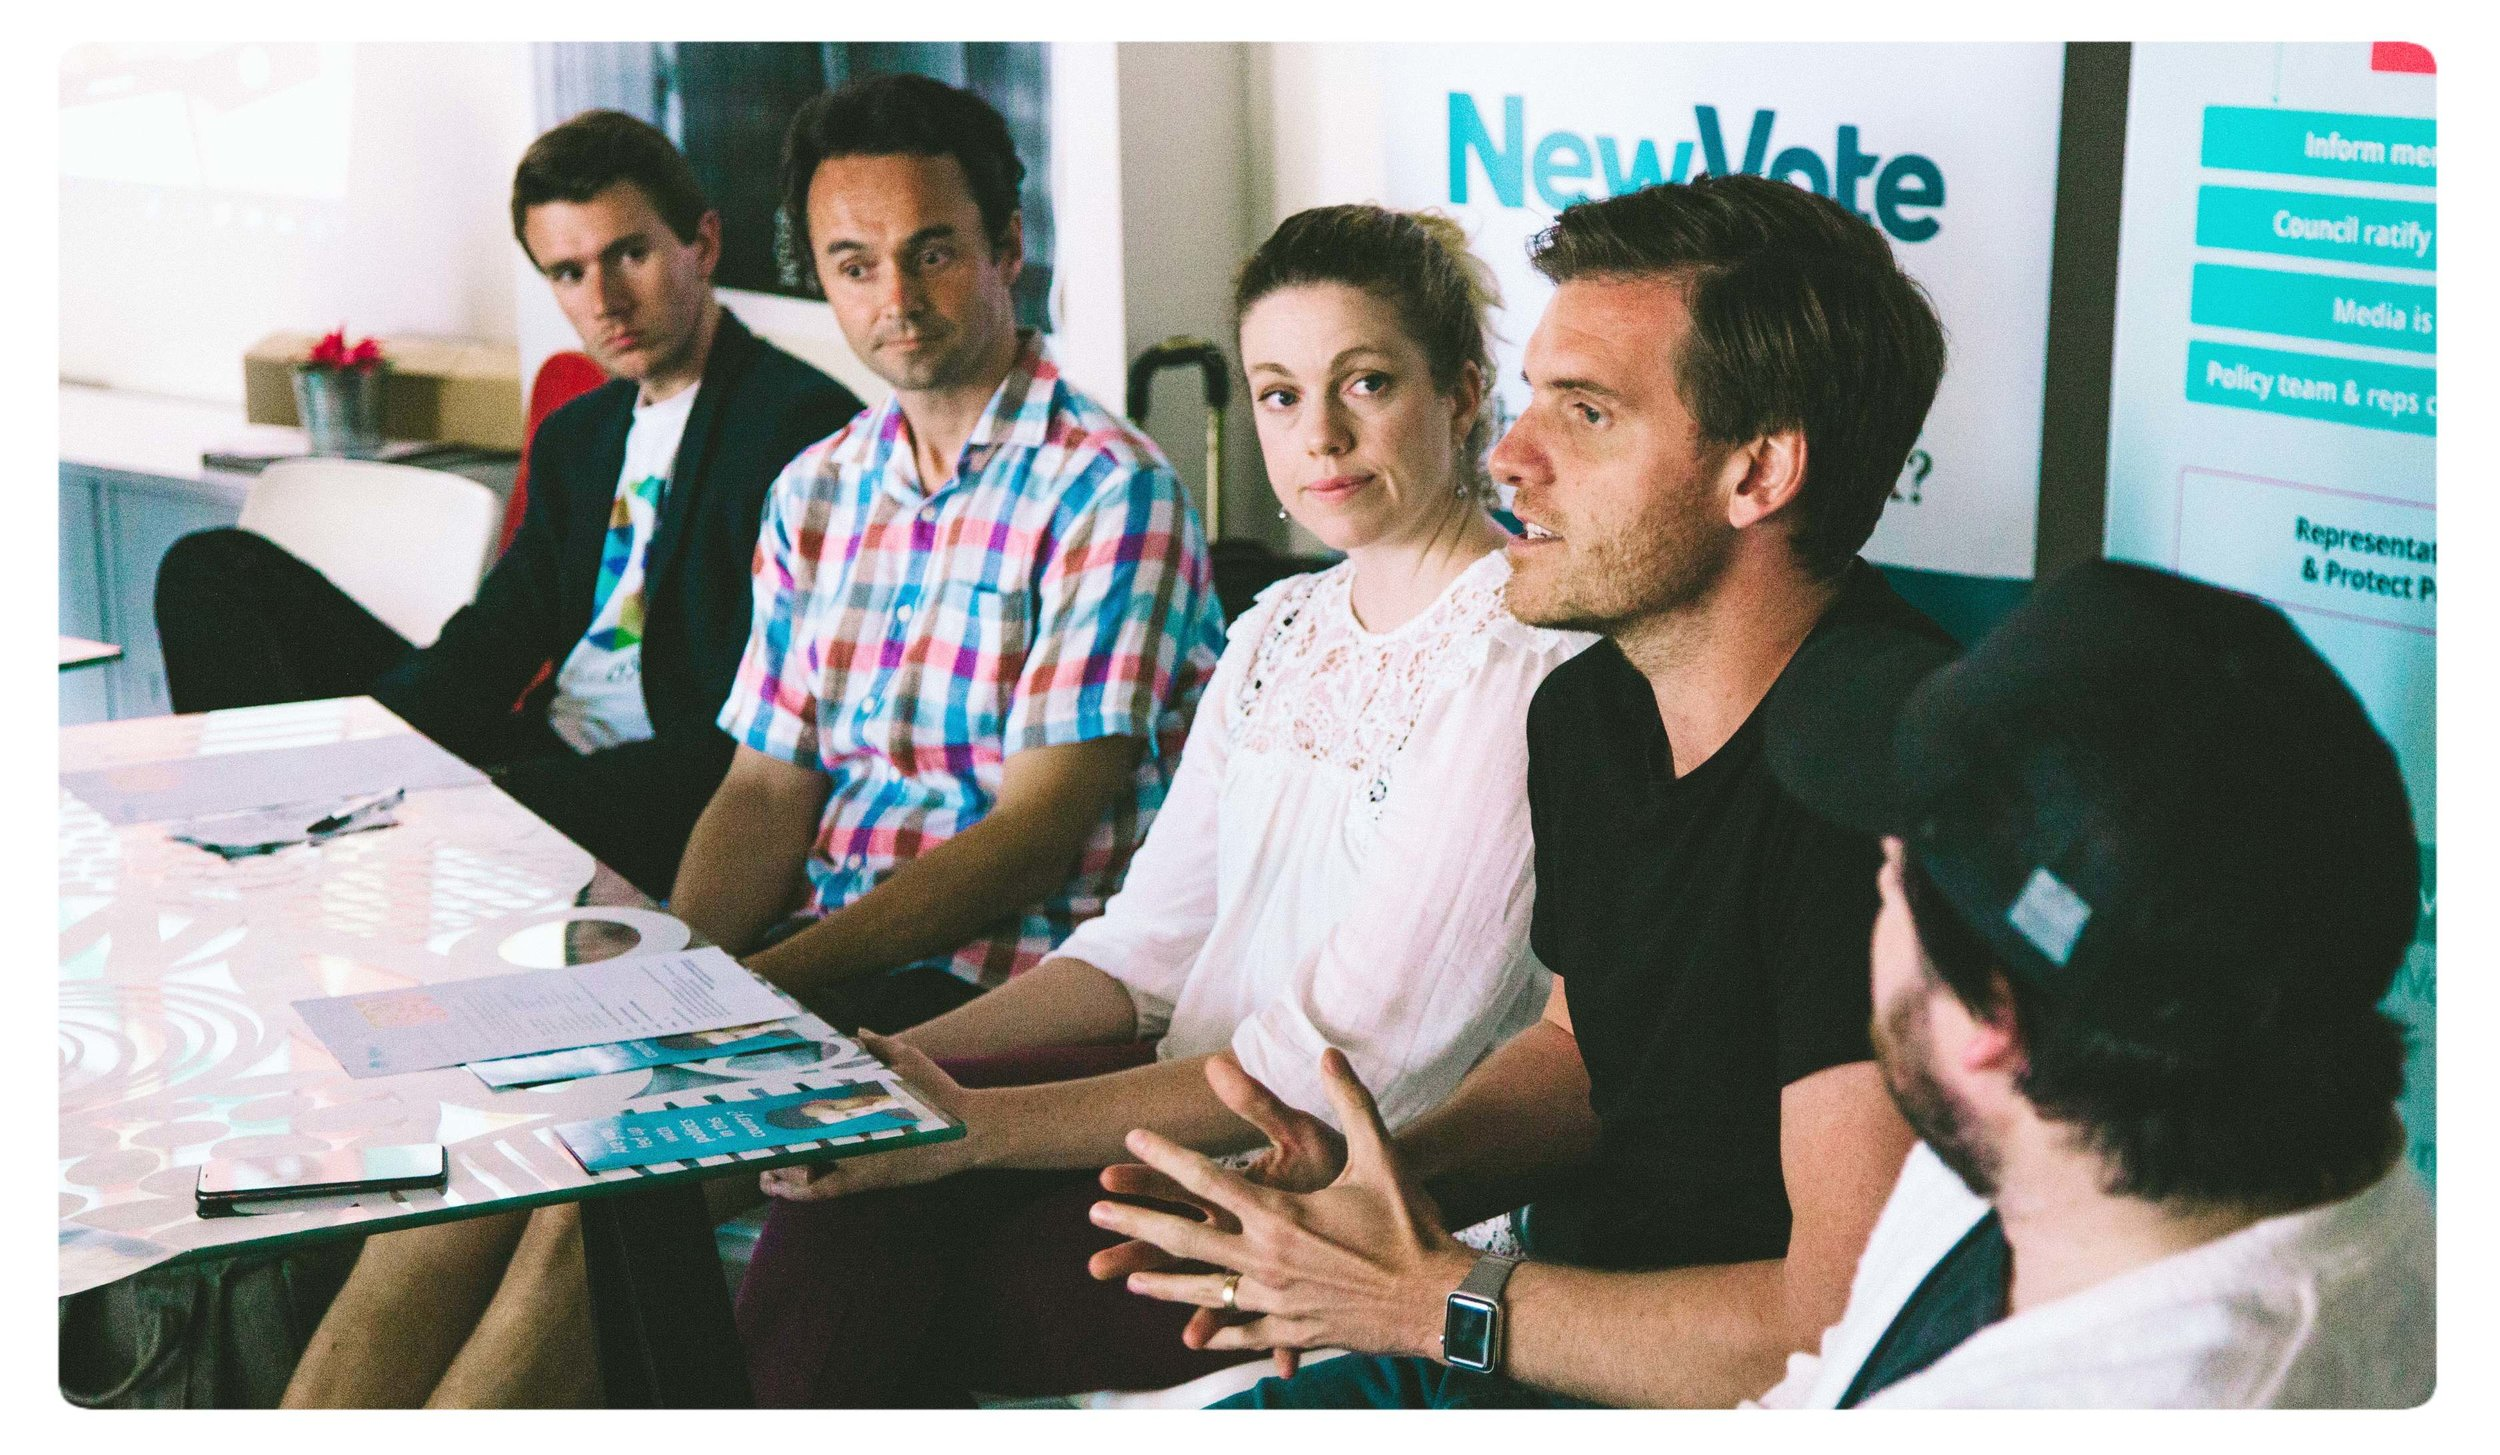 Australian Digital Democracy Forum in November 2017, hosted by NewVote in Melbourne, Australia.  From Left to Right, Nathan Spataro of FLUX party and SecureVote, Karel Boele of PeopleDecide, Rebecca Dhal of Collabforge, Jamie Skella of Horizon State and Adam Jacoby of MiVote.